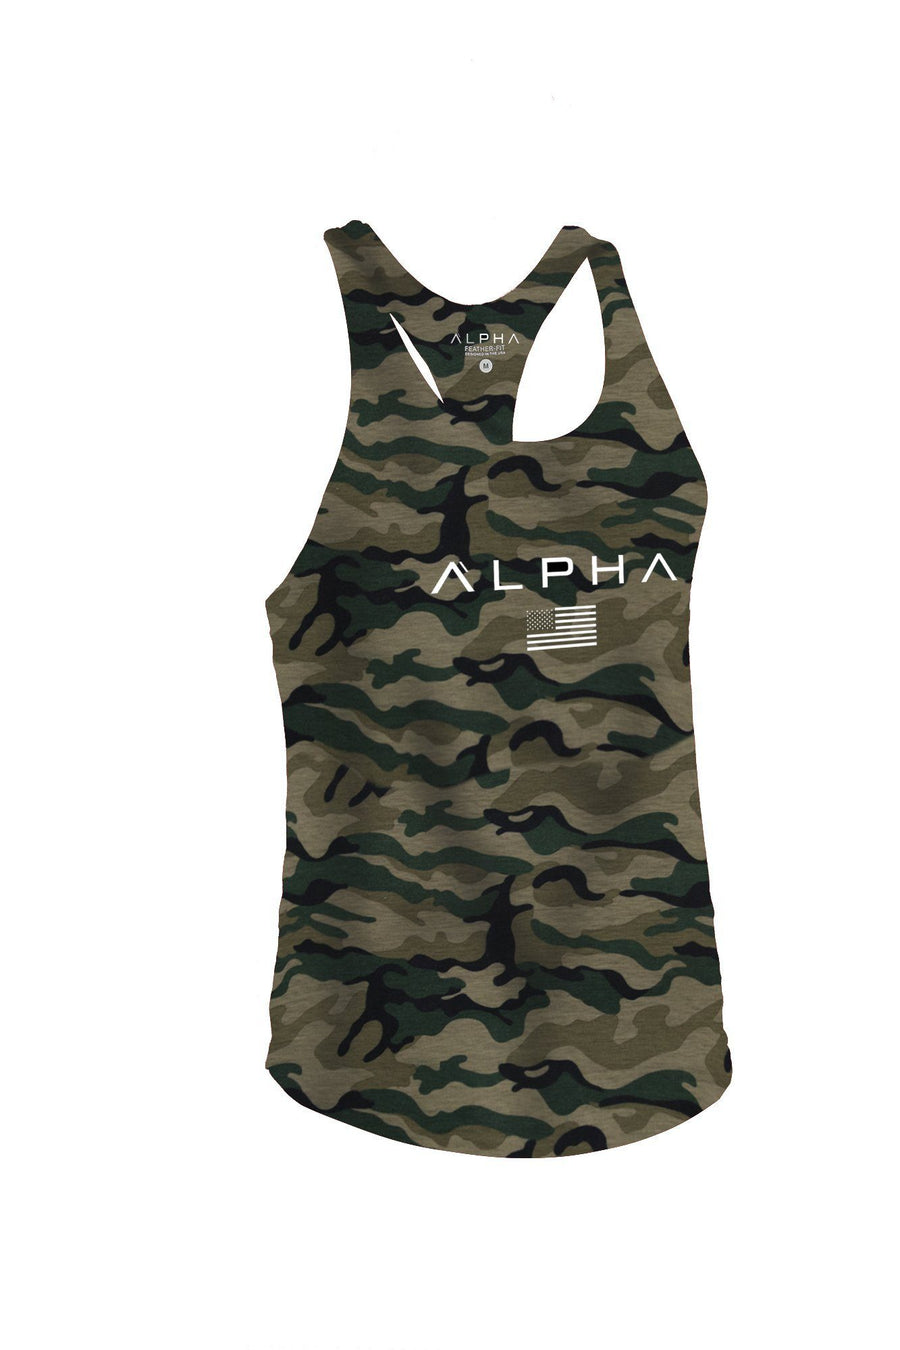 The Alpha Flag - Feather-Fit™ Stringer - Camo